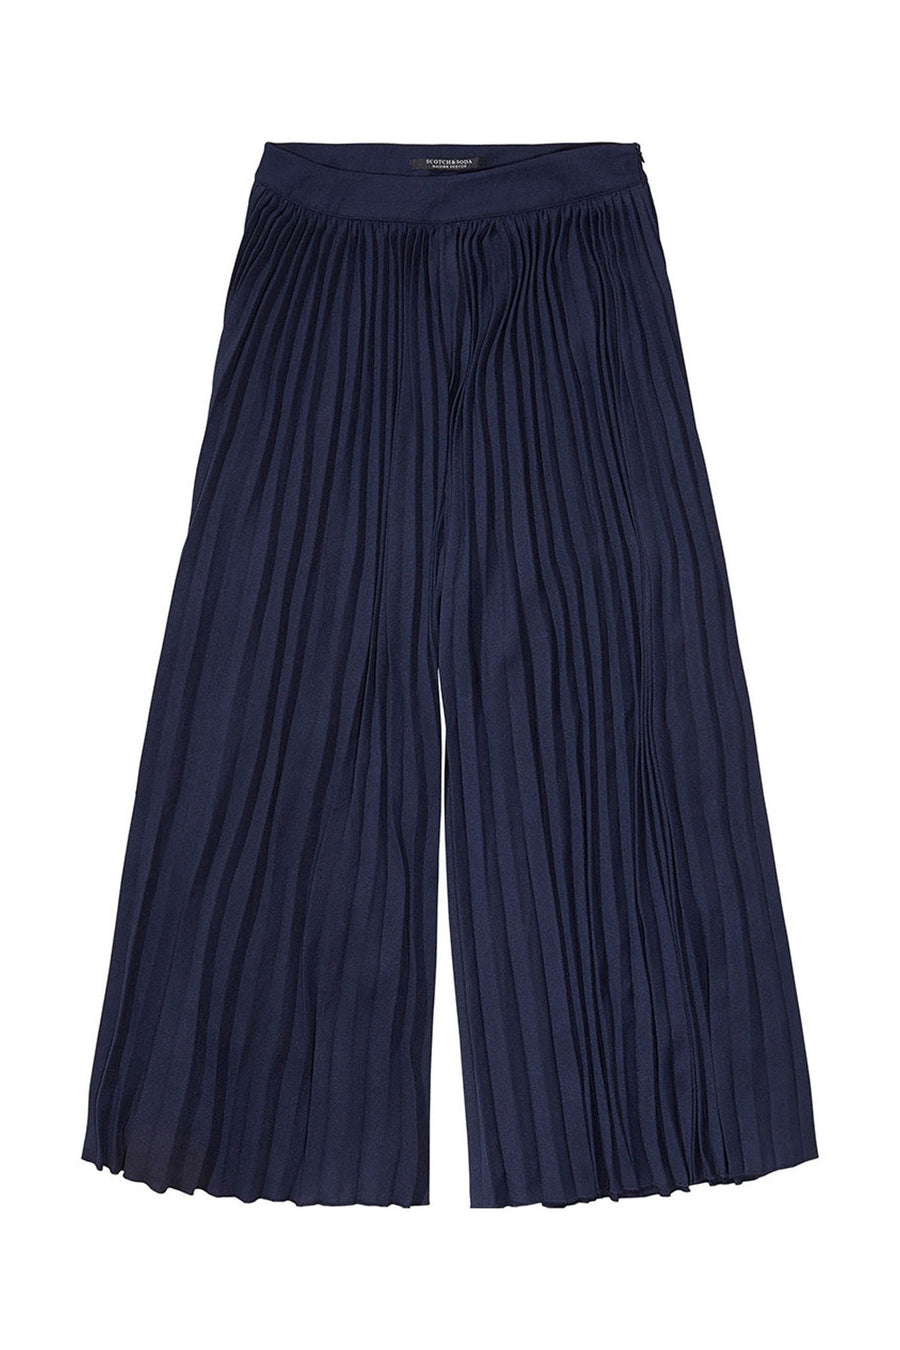 The Pleated Culottes by Maison Scotch